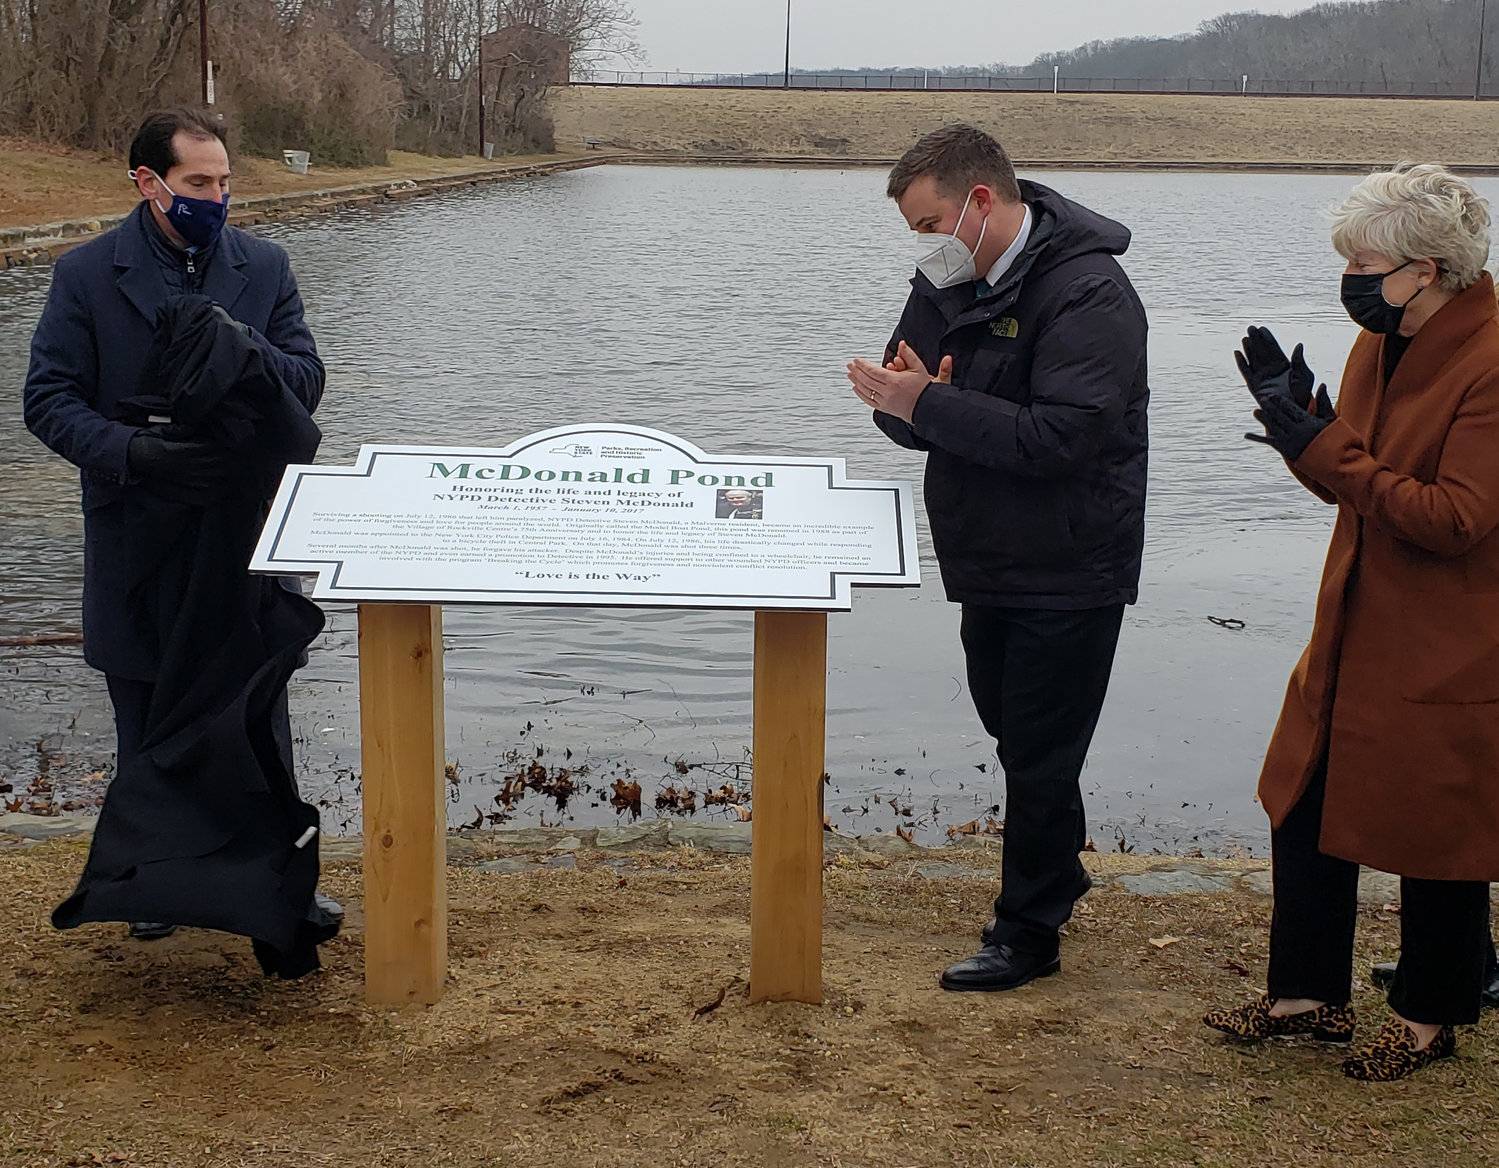 NYPD Sgt. Conor McDonald, center, and his mother, Patti Ann, were the first to see new signage for McDonald Pond, which was unveiled by State Sen. Todd Kaminsky, left, on Jan. 15.